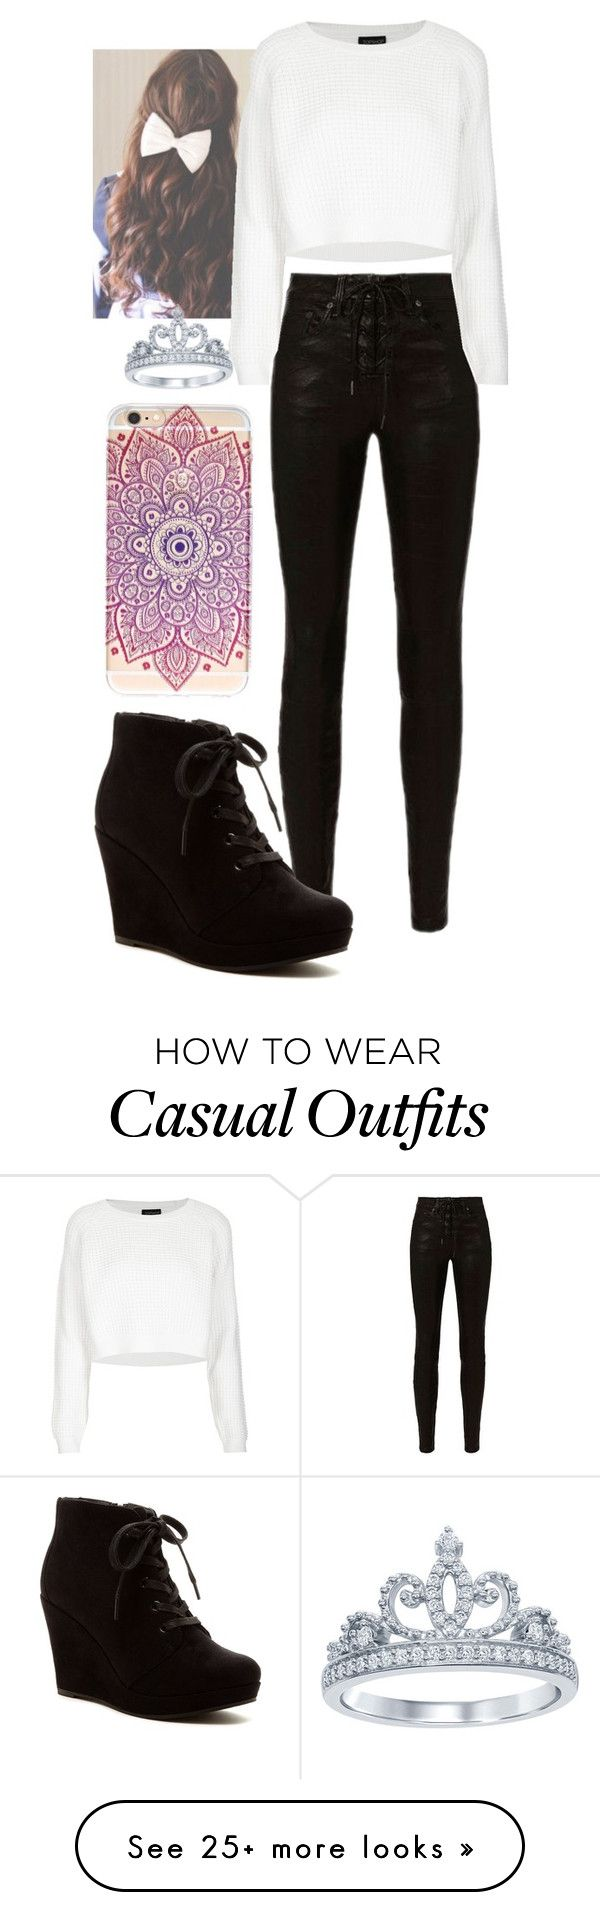 """Fall Chìc"" by mayal-2 on Polyvore featuring rag & bone, Topshop, Rampage and Disney"